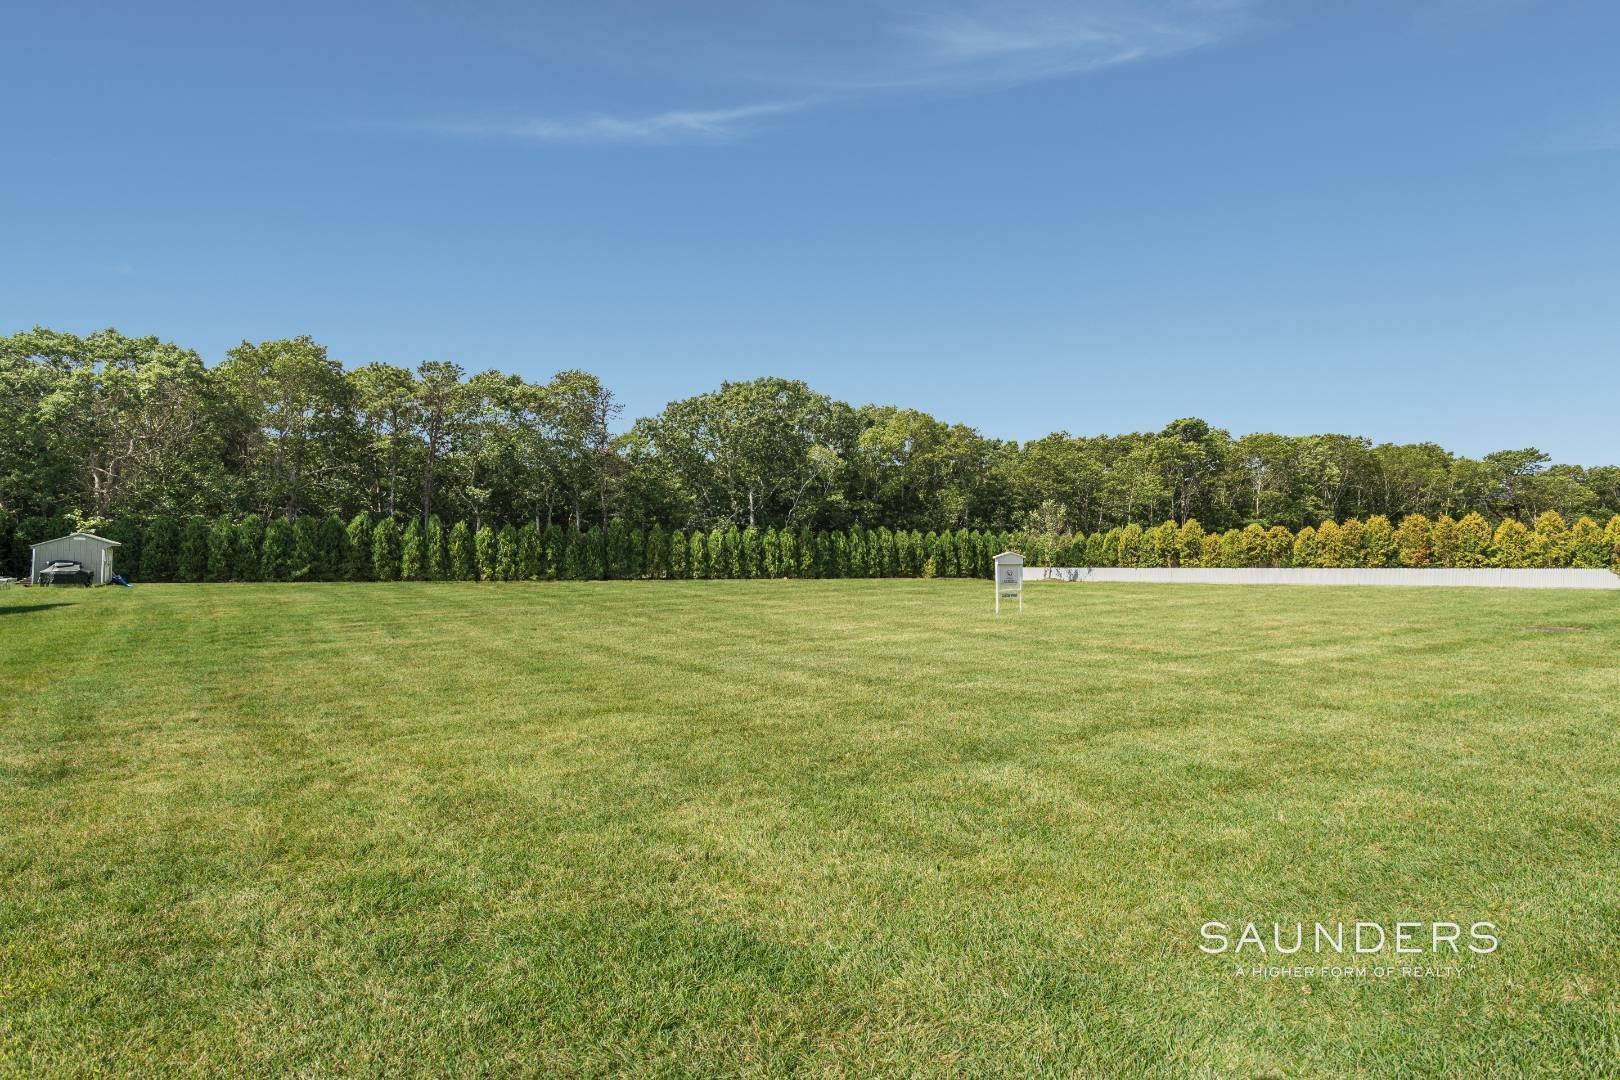 7. Land for Sale at Vacant Land Opportunity Center Of The Village Of Quogue 129 Montauk Highway, Quogue Village, Southampton Town, NY 11959